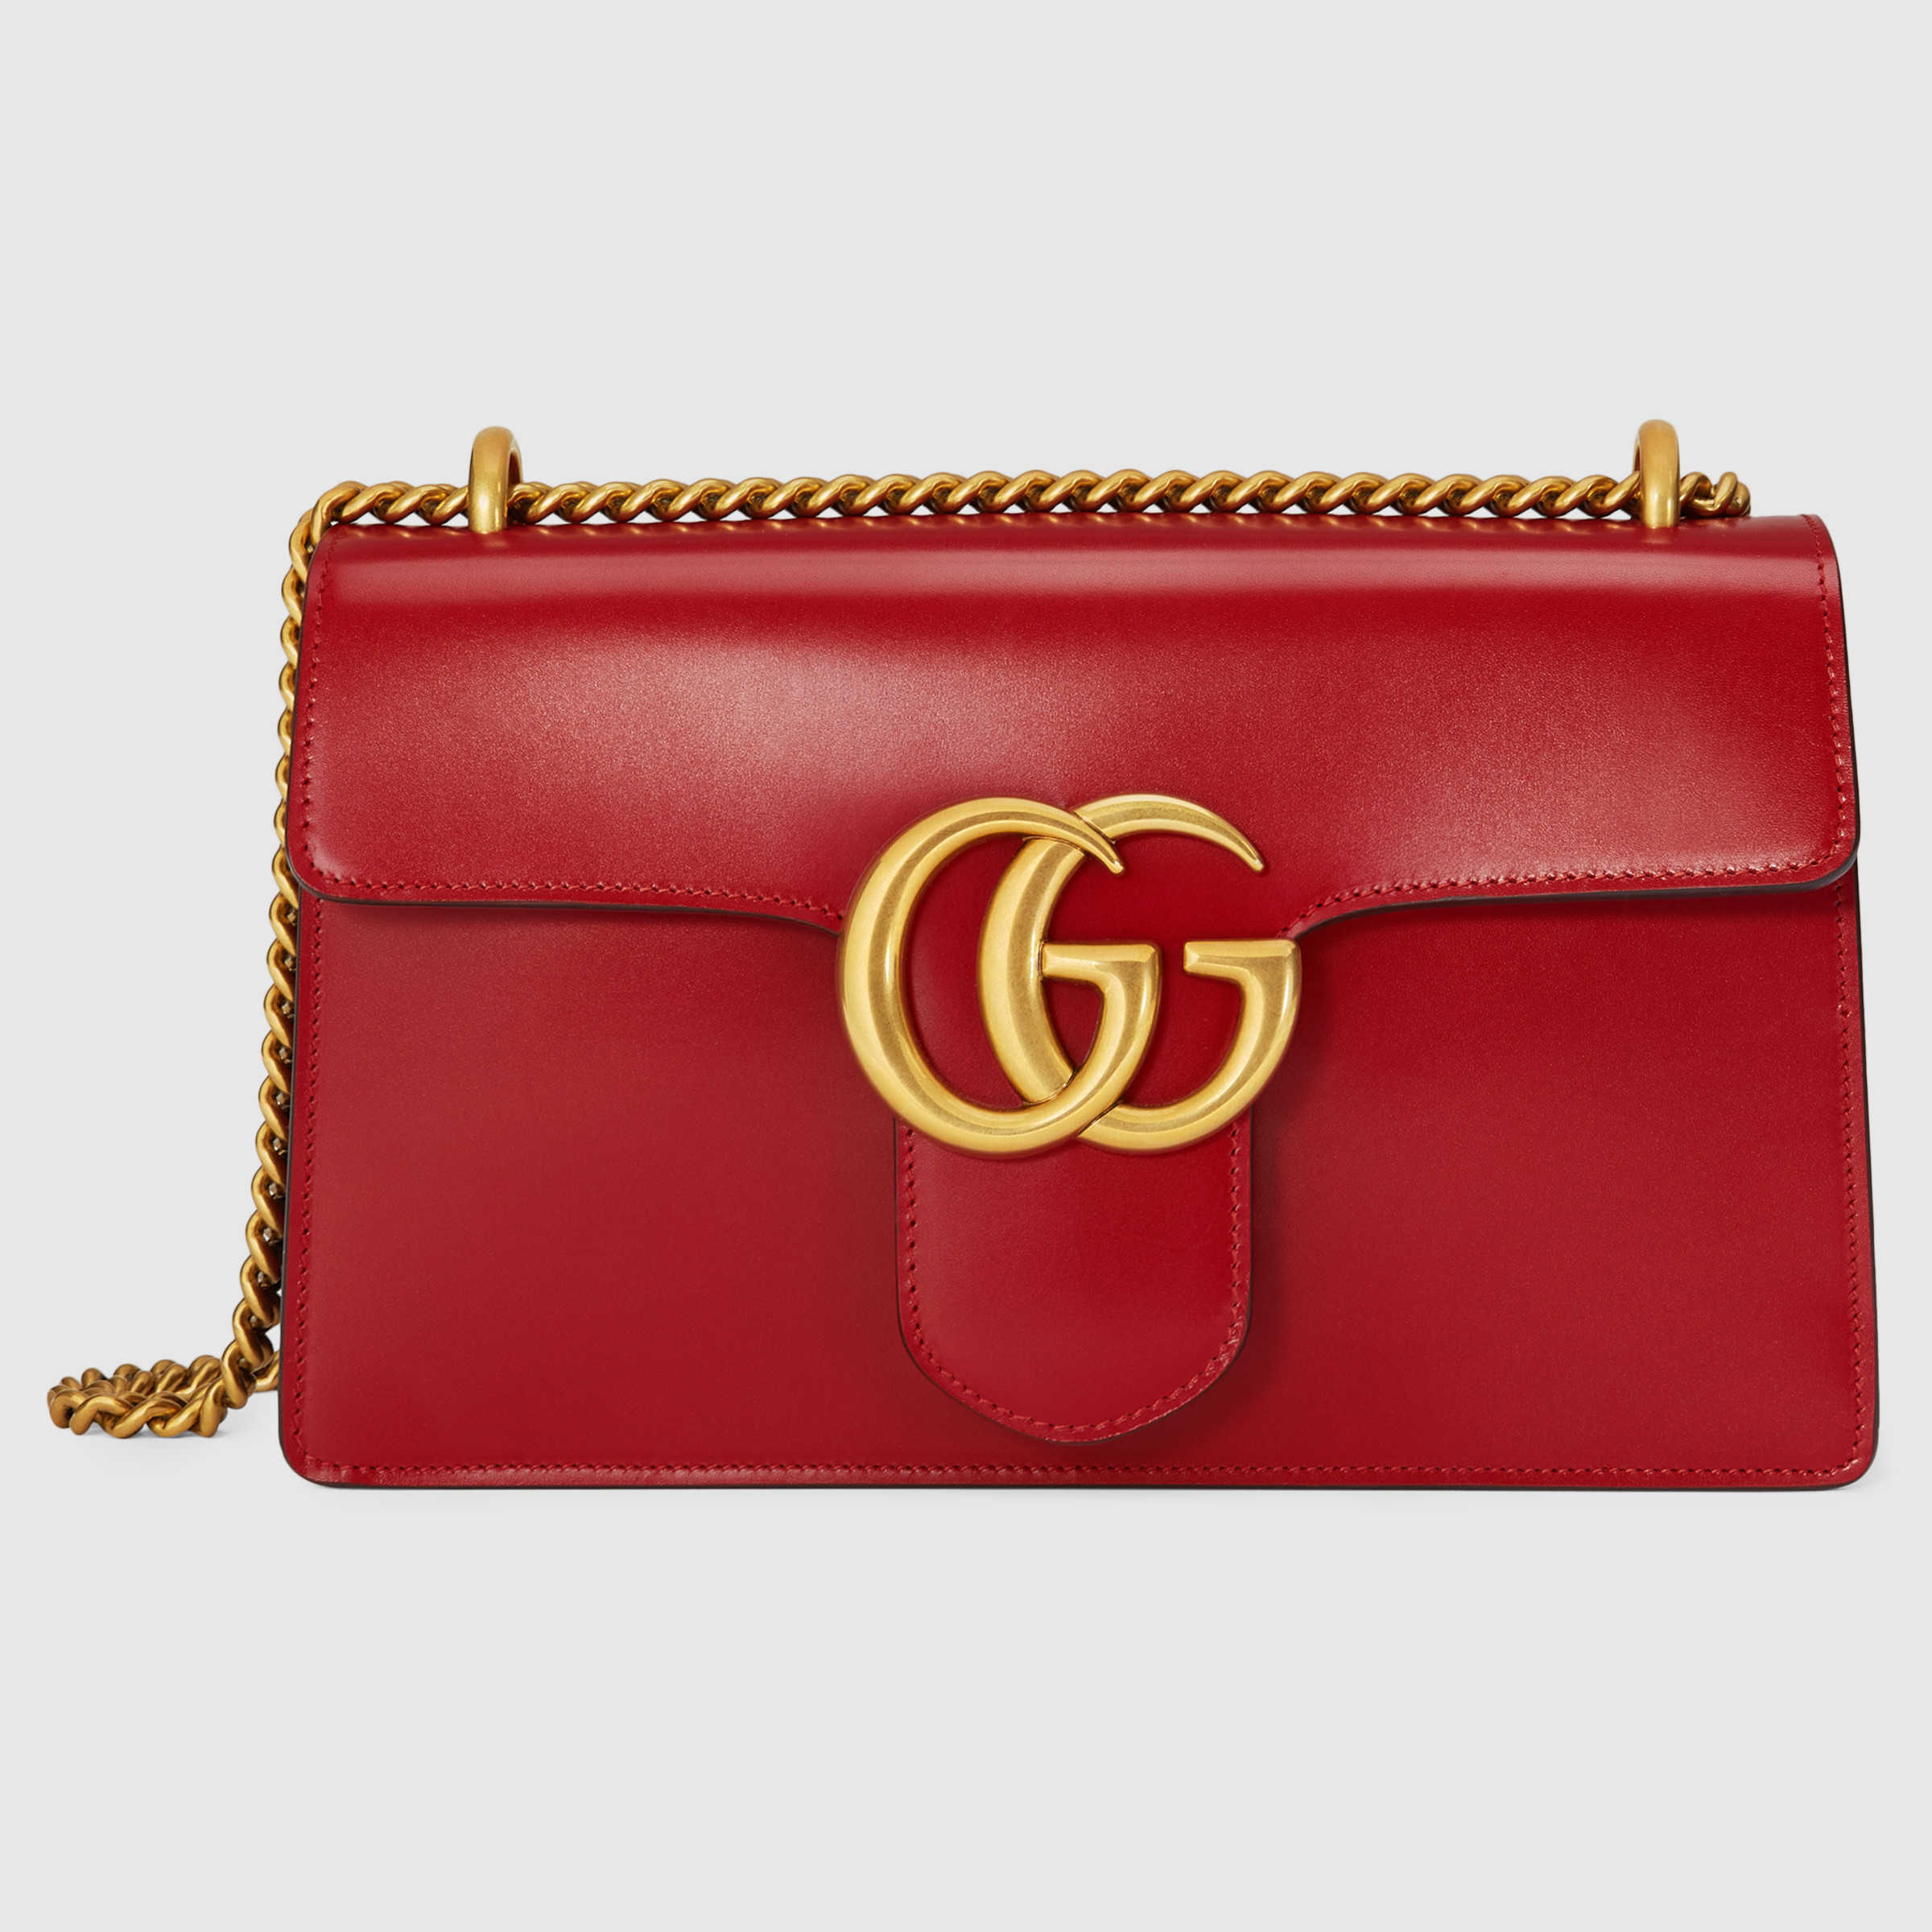 6428a25940cd Gucci Gg Marmont Bag Red | Stanford Center for Opportunity Policy in ...